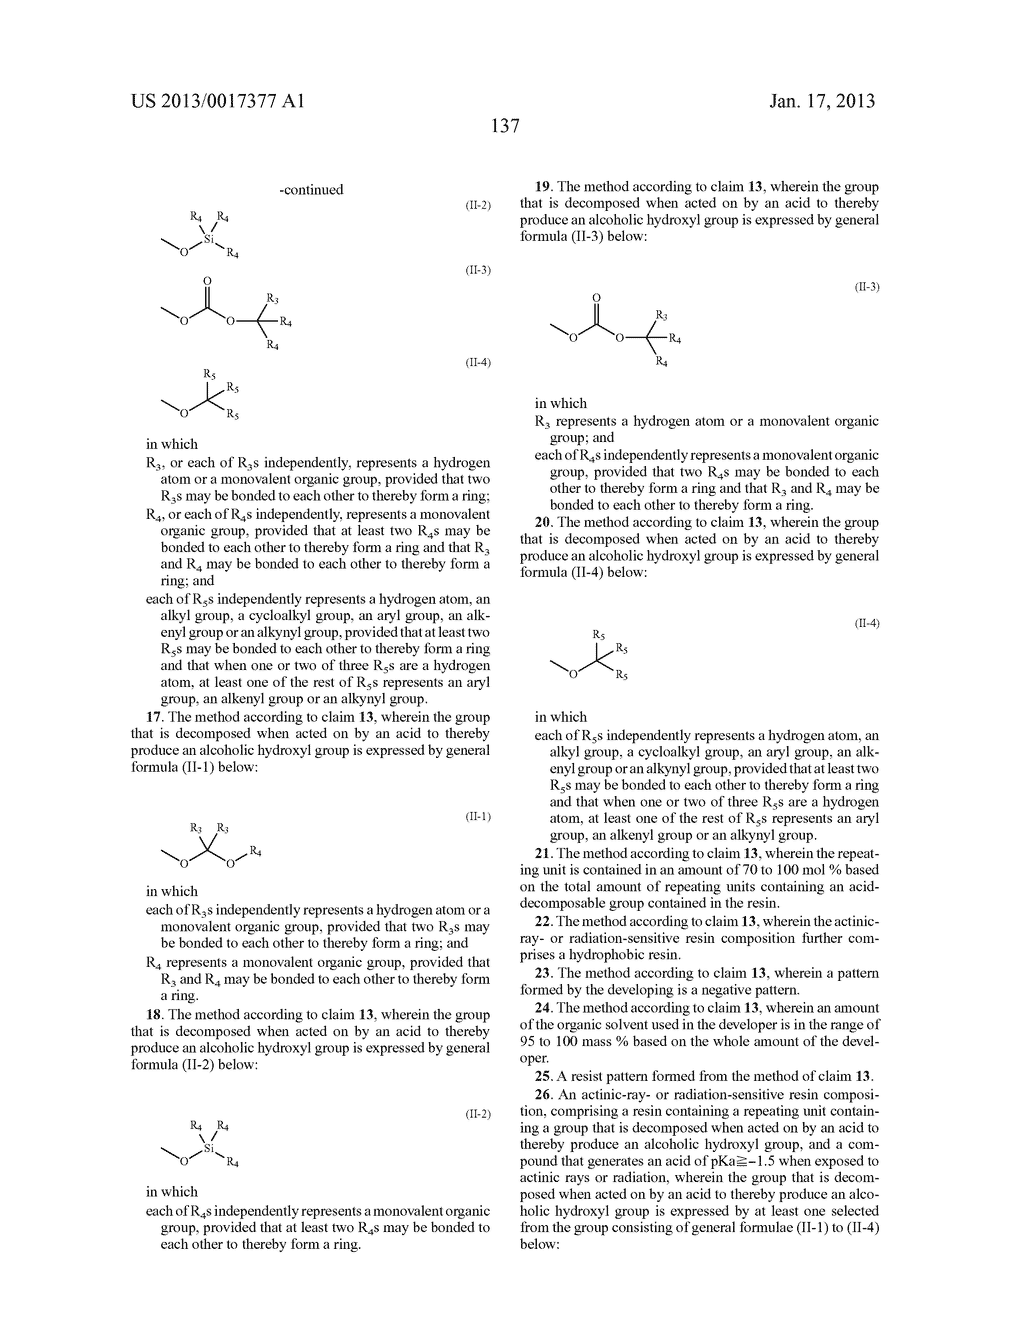 ACTINIC-RAY- OR RADIATION-SENSITIVE RESIN COMPOSITION AND METHOD OF     FORMING PATTERN USING THE SAMEAANM Kataoka; ShoheiAACI ShizuokaAACO JPAAGP Kataoka; Shohei Shizuoka JPAANM Iwato; KaoruAACI ShizuokaAACO JPAAGP Iwato; Kaoru Shizuoka JPAANM Kamimura; SouAACI ShizuokaAACO JPAAGP Kamimura; Sou Shizuoka JPAANM Tsuchihashi; ToruAACI ShizuokaAACO JPAAGP Tsuchihashi; Toru Shizuoka JPAANM Enomoto; YuichiroAACI ShizuokaAACO JPAAGP Enomoto; Yuichiro Shizuoka JPAANM Fujii; KanaAACI ShizuokaAACO JPAAGP Fujii; Kana Shizuoka JPAANM Mizutani; KazuyoshiAACI ShizuokaAACO JPAAGP Mizutani; Kazuyoshi Shizuoka JPAANM Tarutani; ShinjiAACI ShizuokaAACO JPAAGP Tarutani; Shinji Shizuoka JPAANM Kato; KeitaAACI ShizuokaAACO JPAAGP Kato; Keita Shizuoka JP - diagram, schematic, and image 138